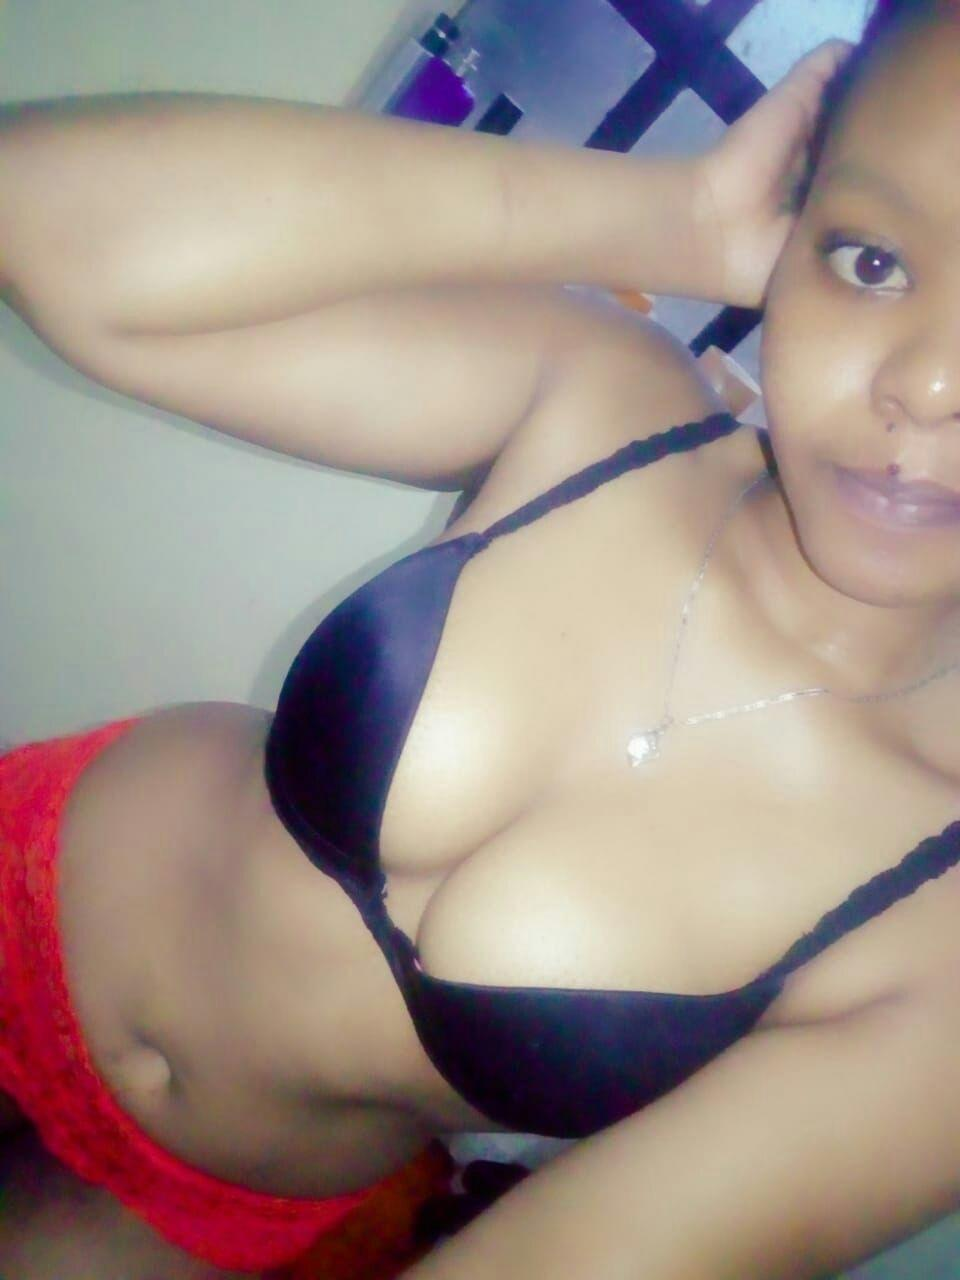 Best March 2020 Porn: Maria Muchiri Nude Photos Leaked!